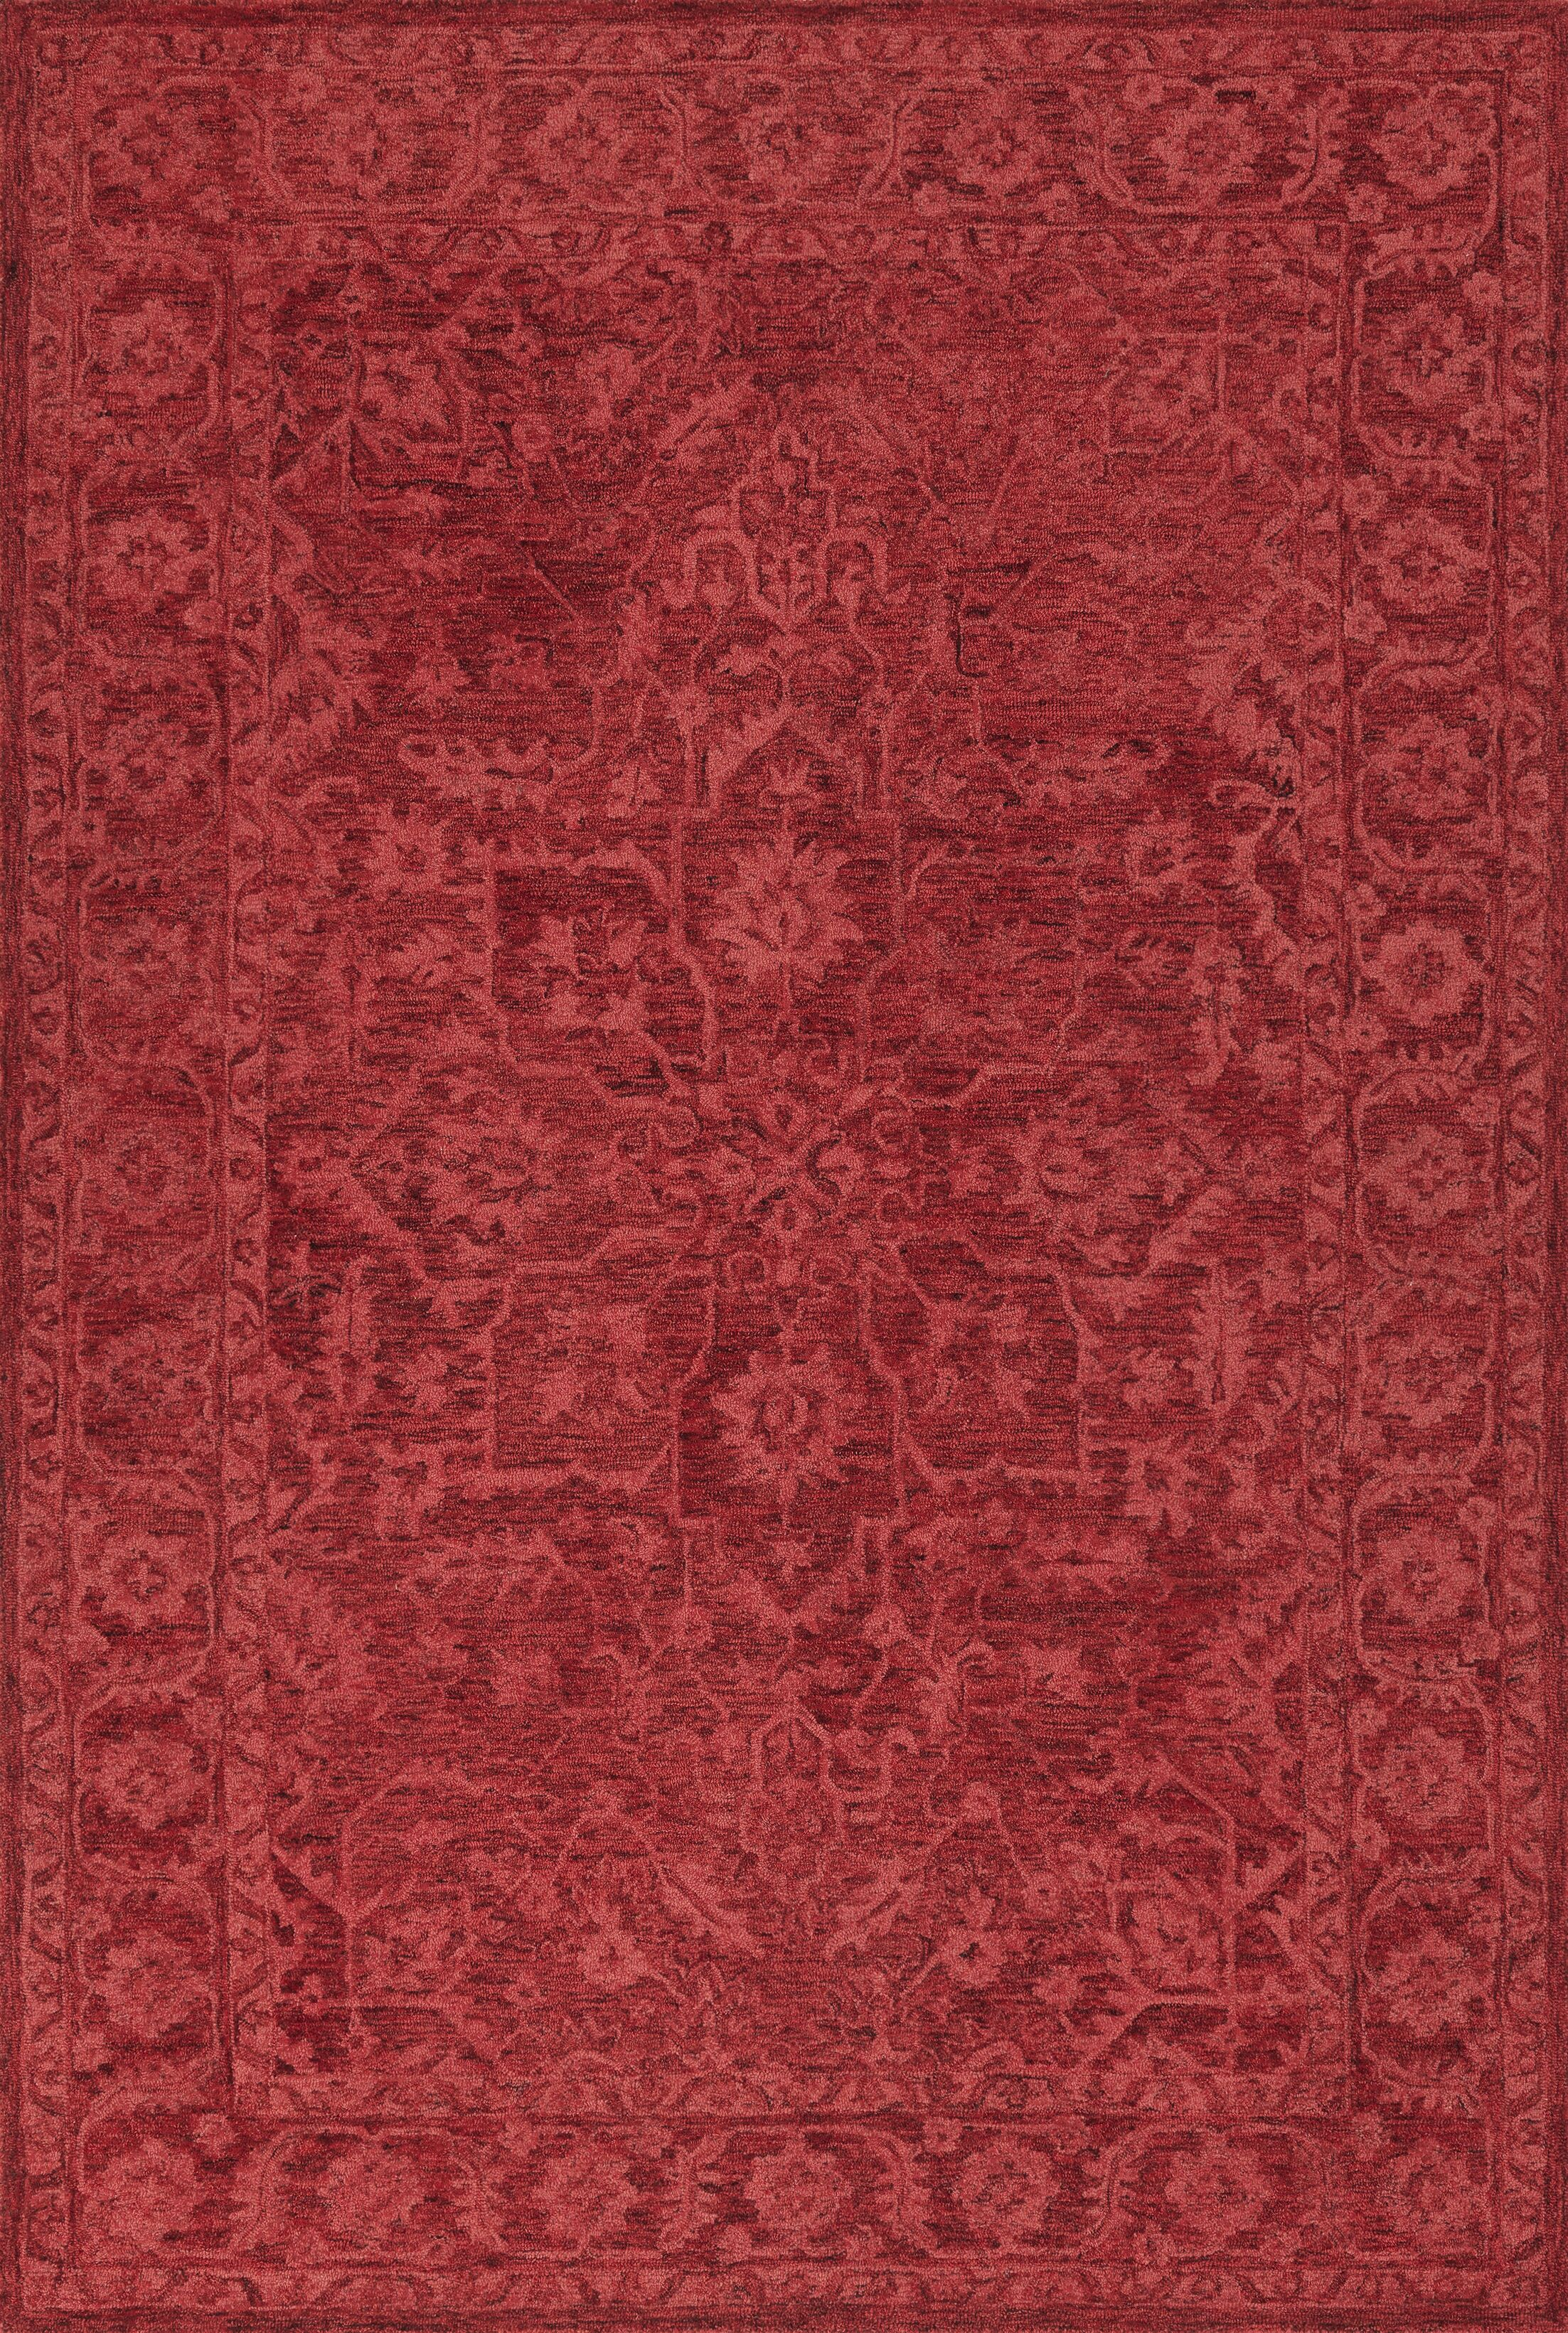 Chatmon Hand-Tufted Wool Red Area Rug Rug Size: Rectangle 5' x 7'6